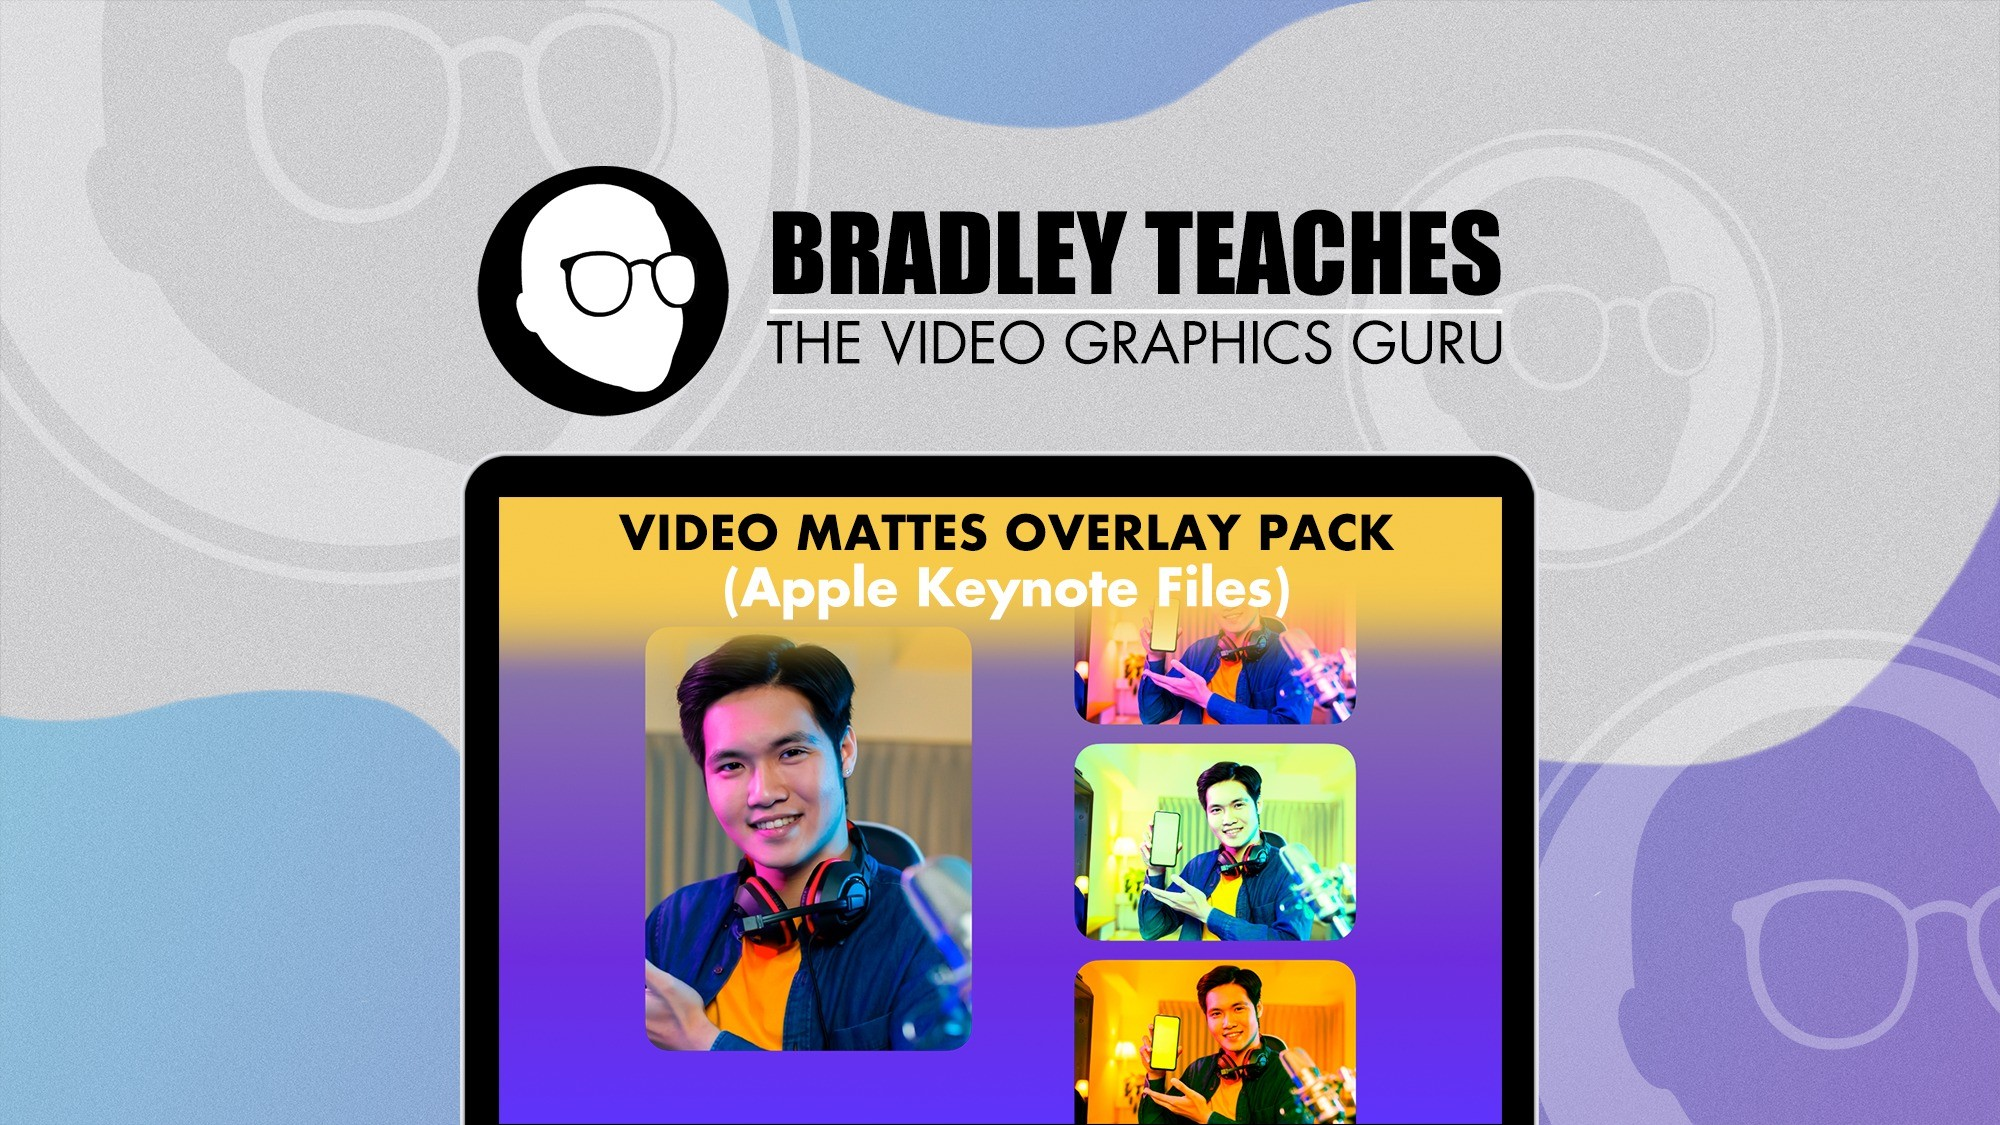 AppSumo Deal for Video Mattes Overlay Pack